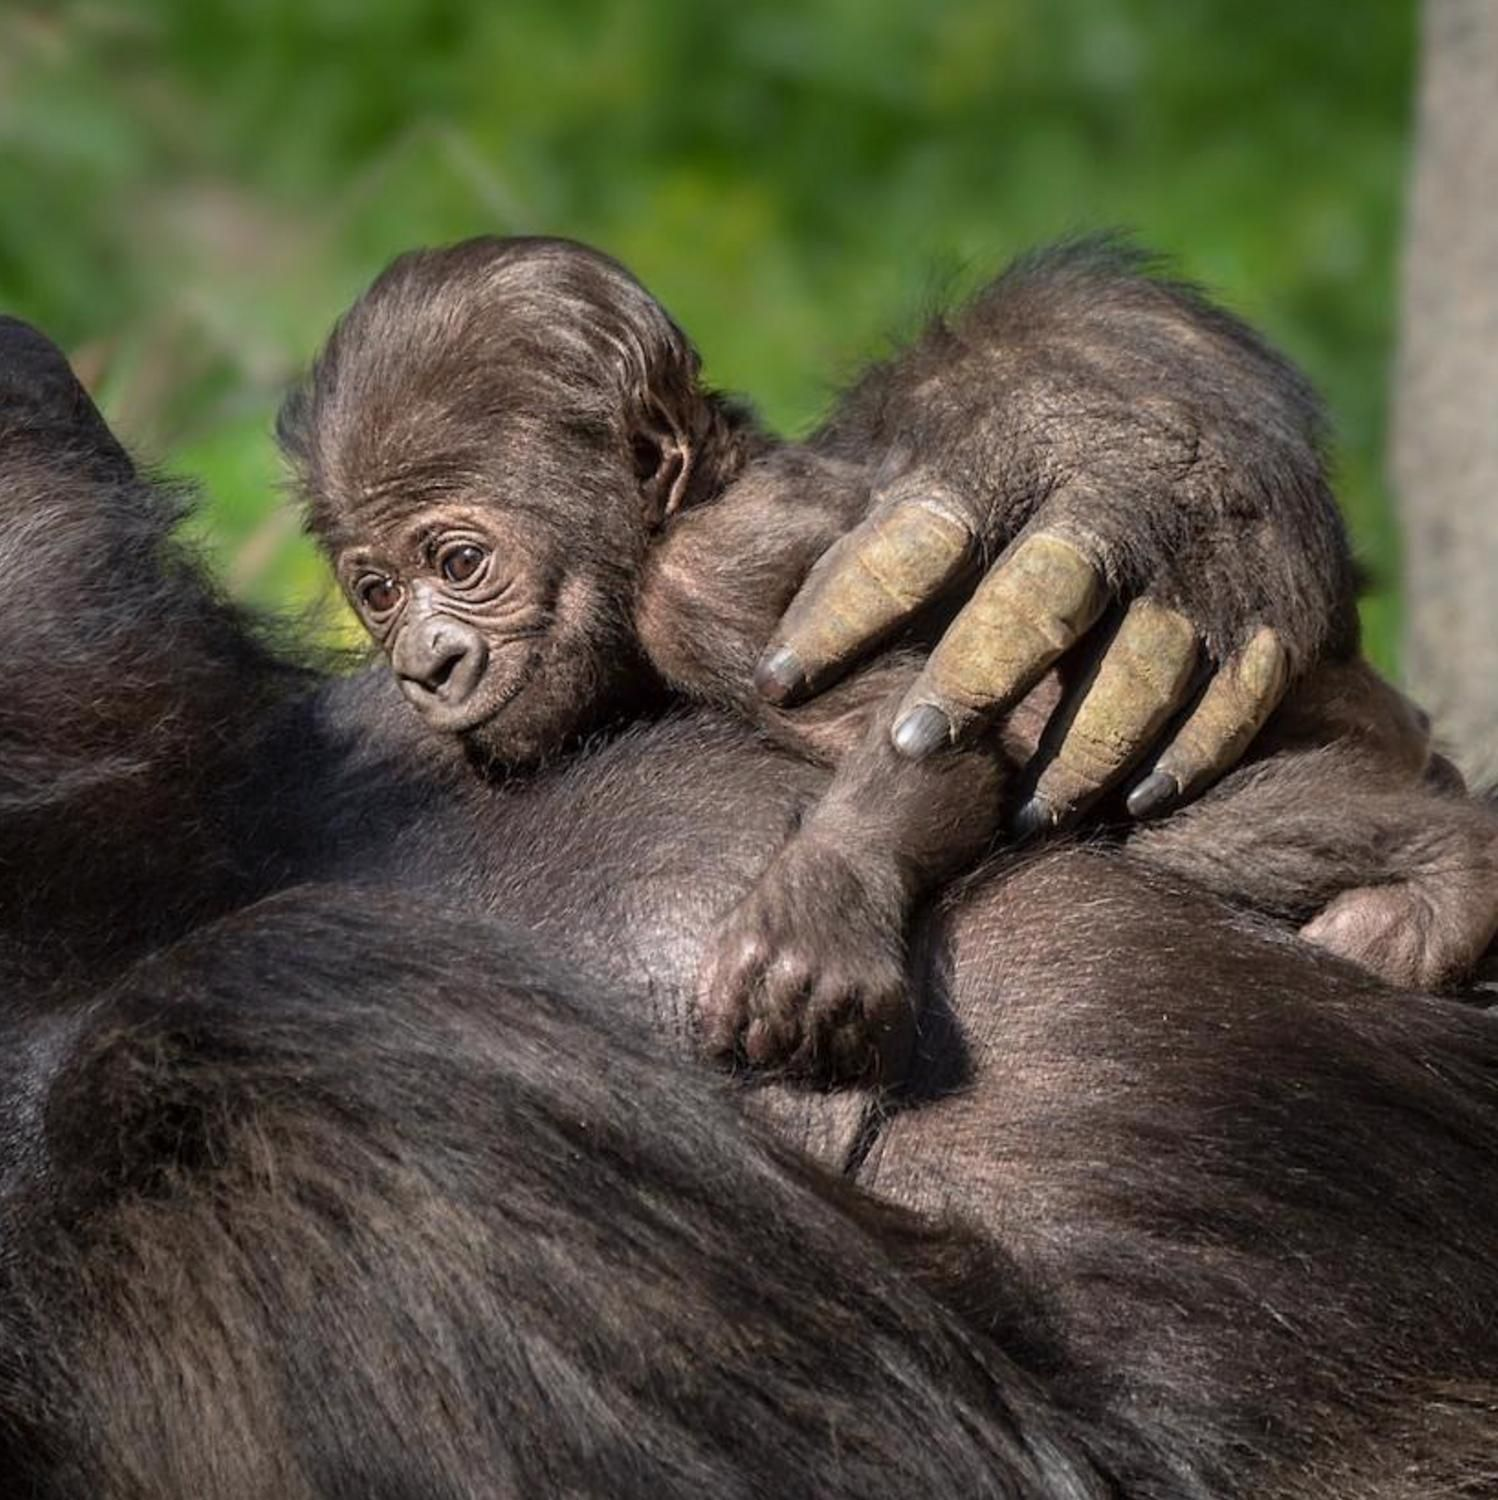 The Beginning Of 2020 Marked A Special Time For The Los Angeles Zoo Where A Baby Gorilla Was Born For The First Time In 20 Y In 2020 Baby Gorillas Gorilla Cute Babies